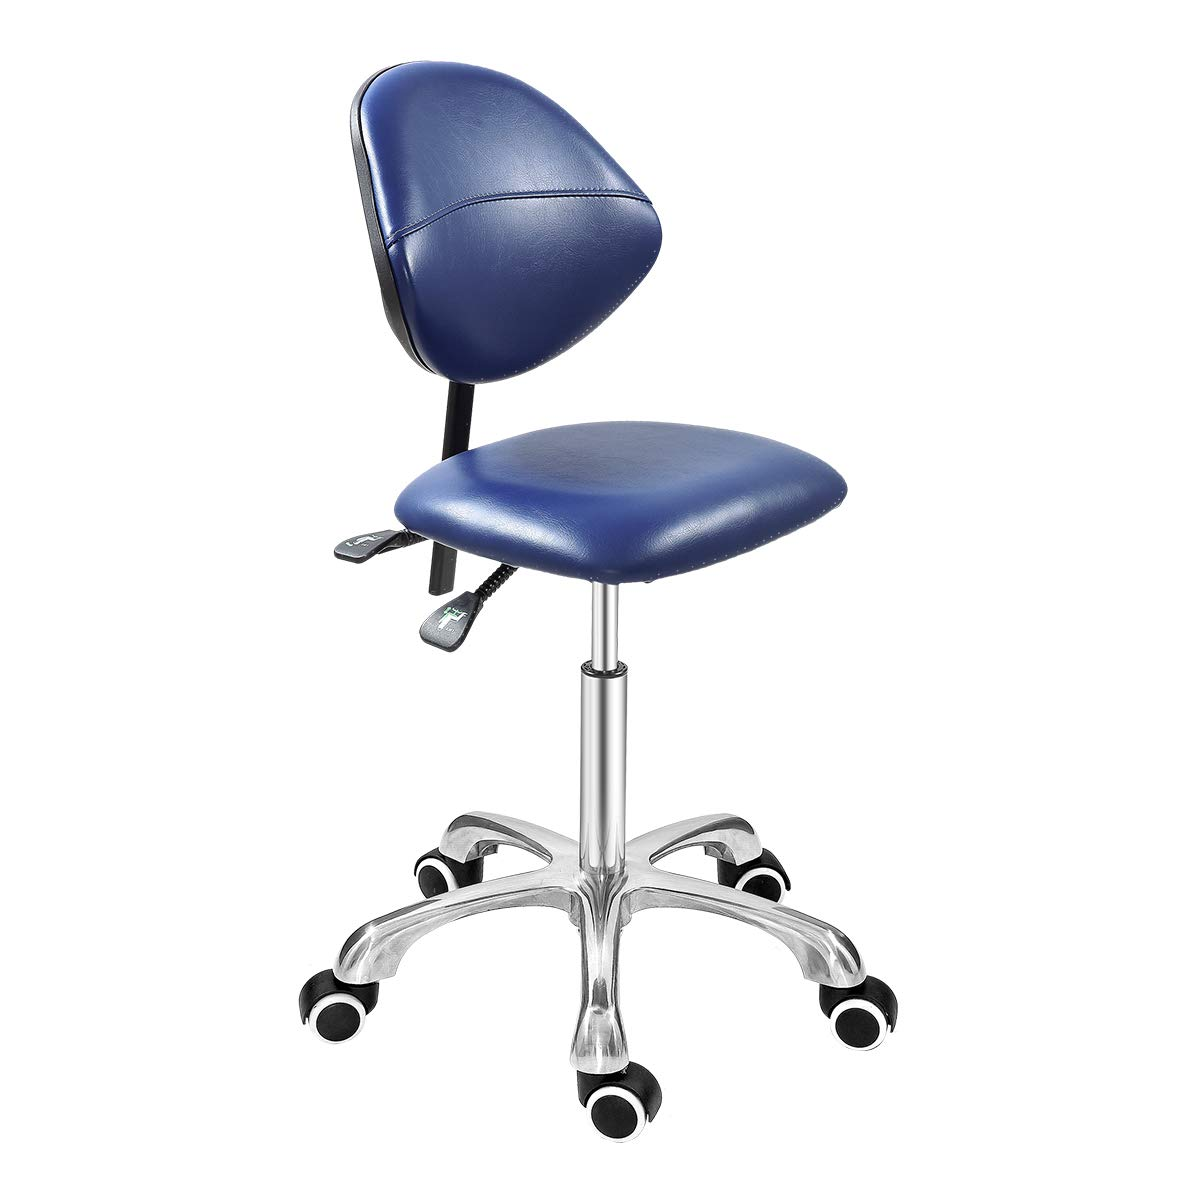 Grace & Grace Professional Office Series Height Adjustable with Ergonomic Tilting Backrest for Drafting,Computer,Studio,Workshop,Classroom, Lab, Counter (Classic, Royal Blue) by Grace & Grace